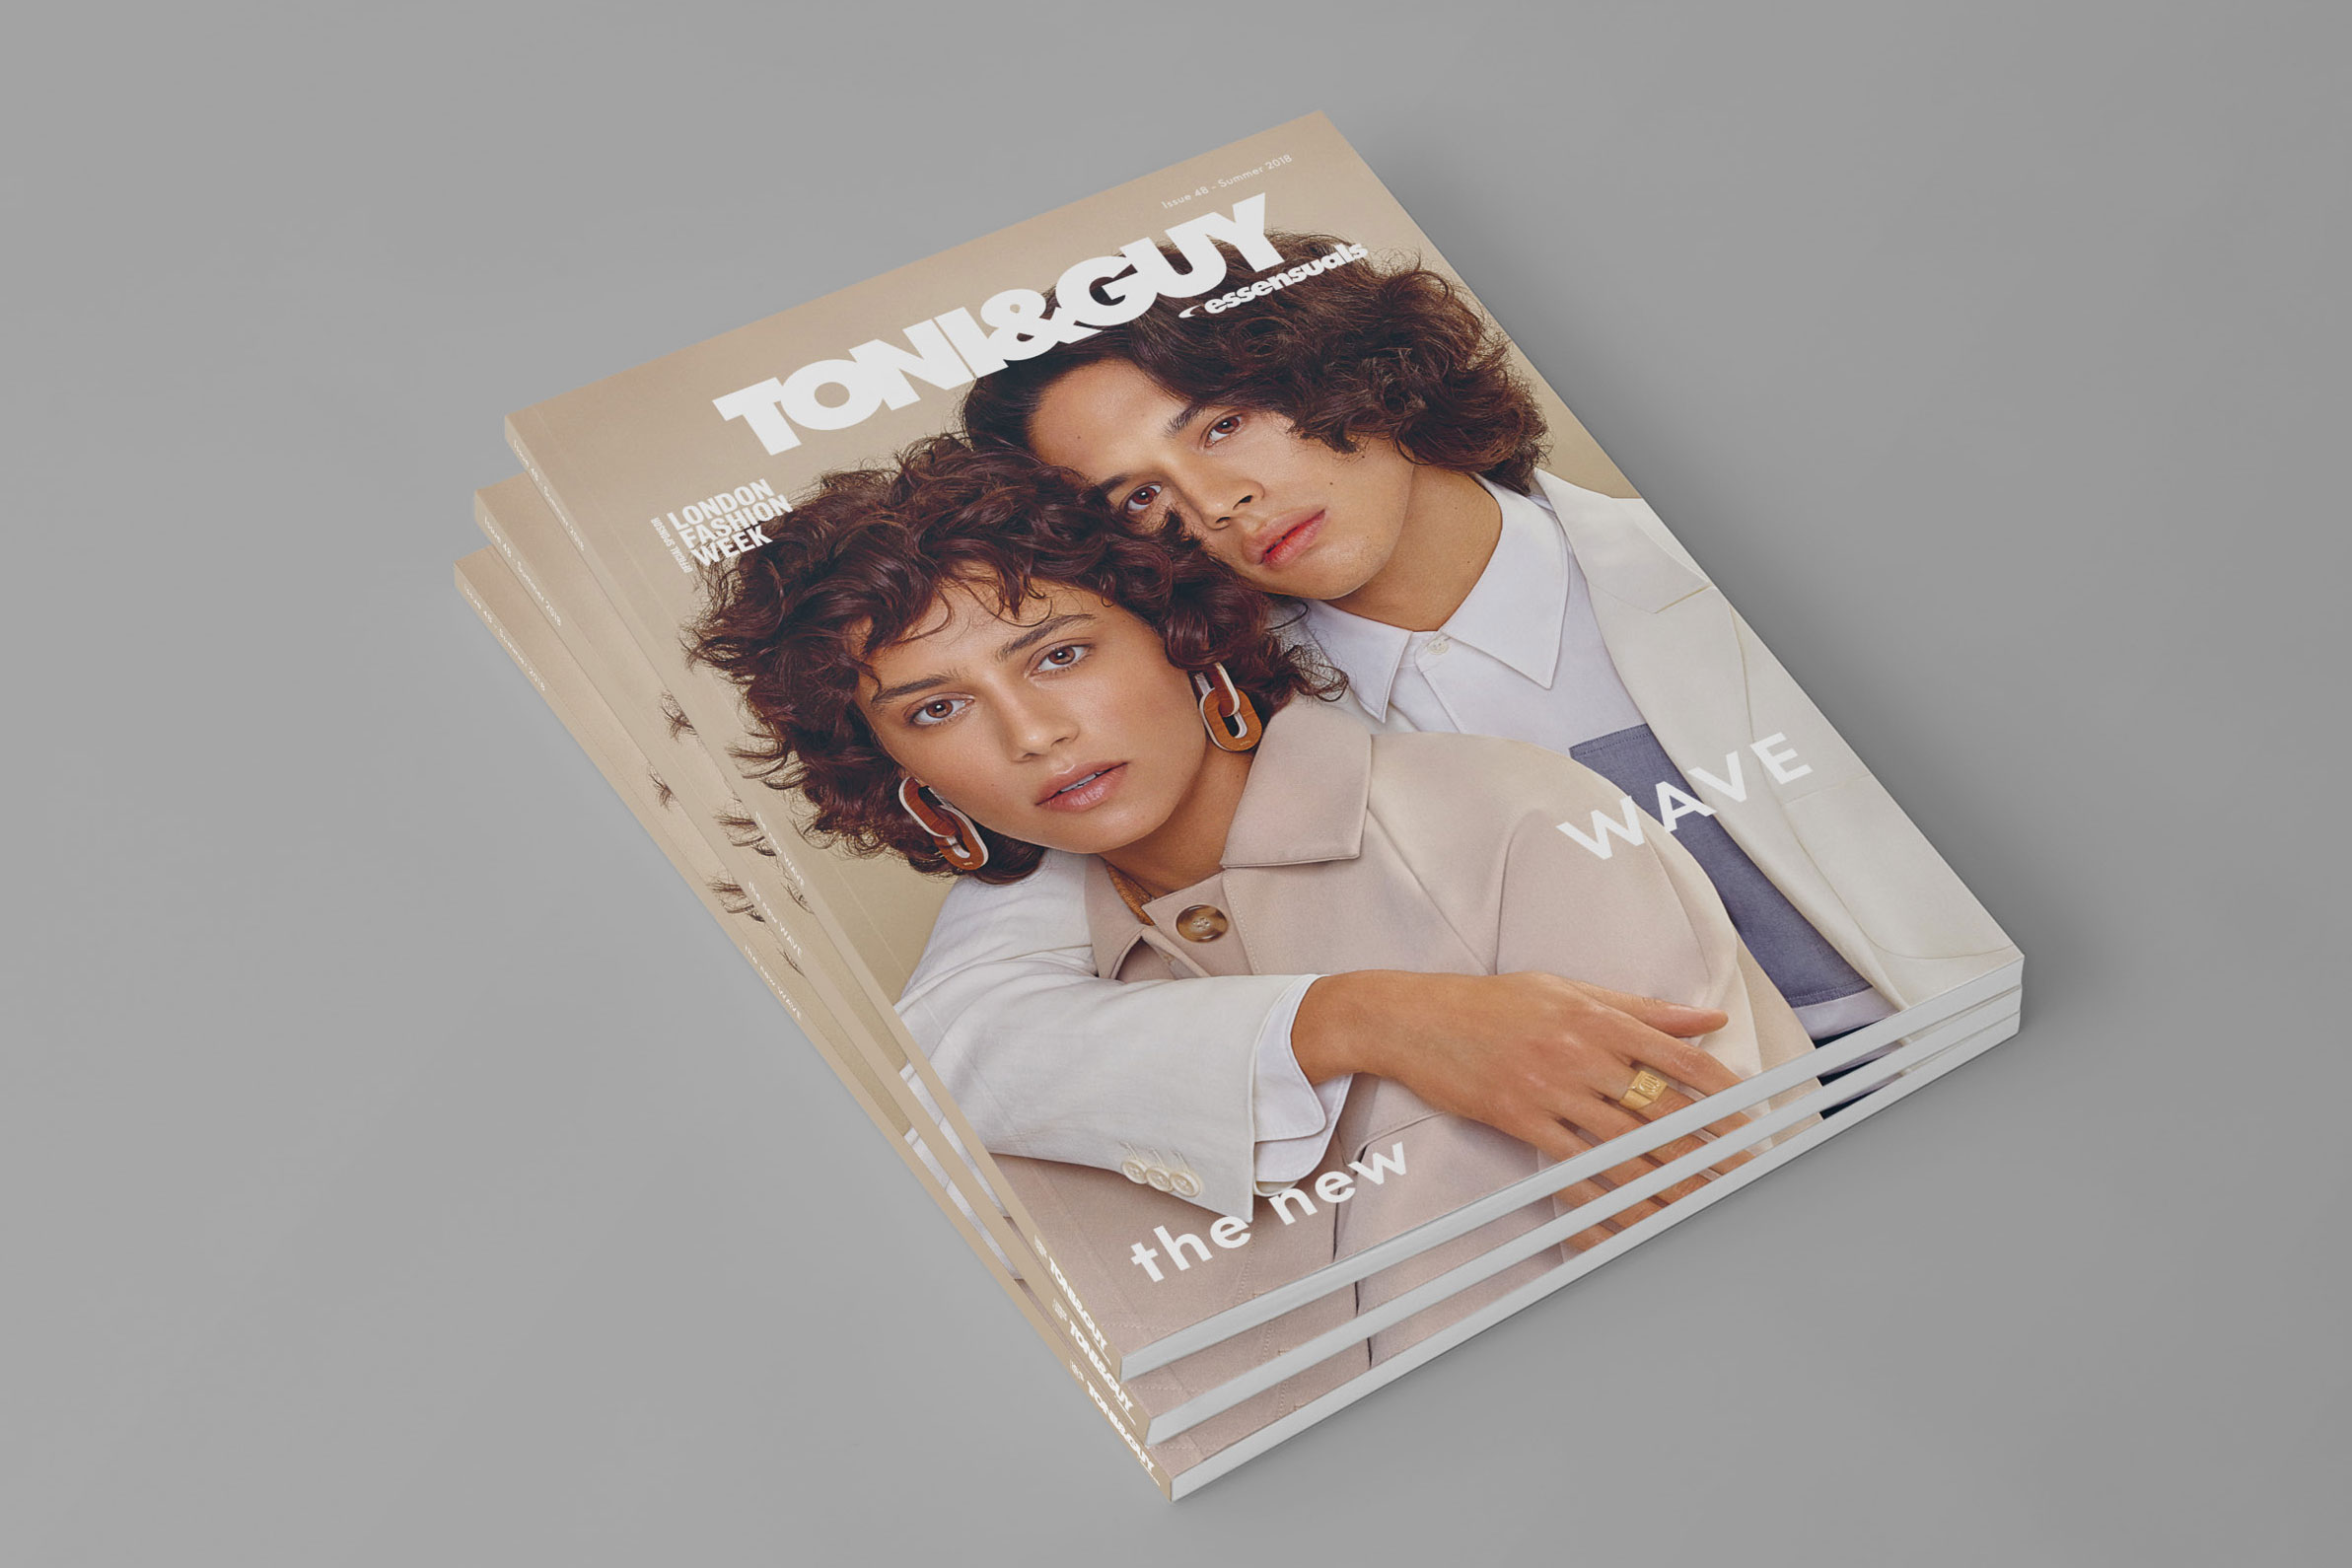 Toni&Guy - Helen worked via an agency with this leading haircare brand to help communicate its relationship to London Fashion Week and beauty trends. This took the shape of magazines, editorial website, show reports, film scripts, advertorials and social posts.Visit Toni&Guy